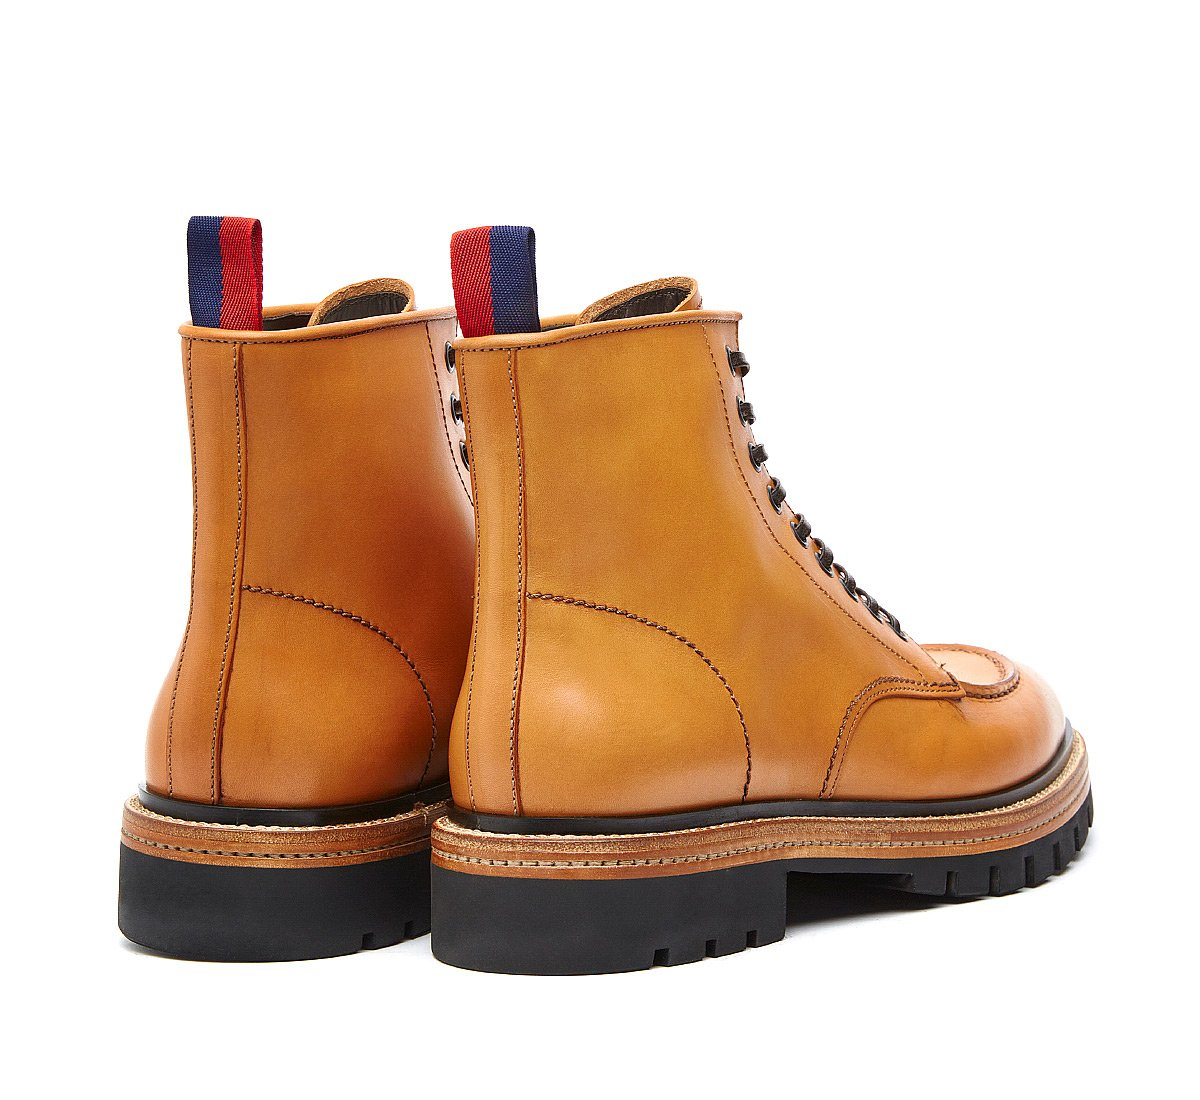 Barracuda Beatle boot in calf leather